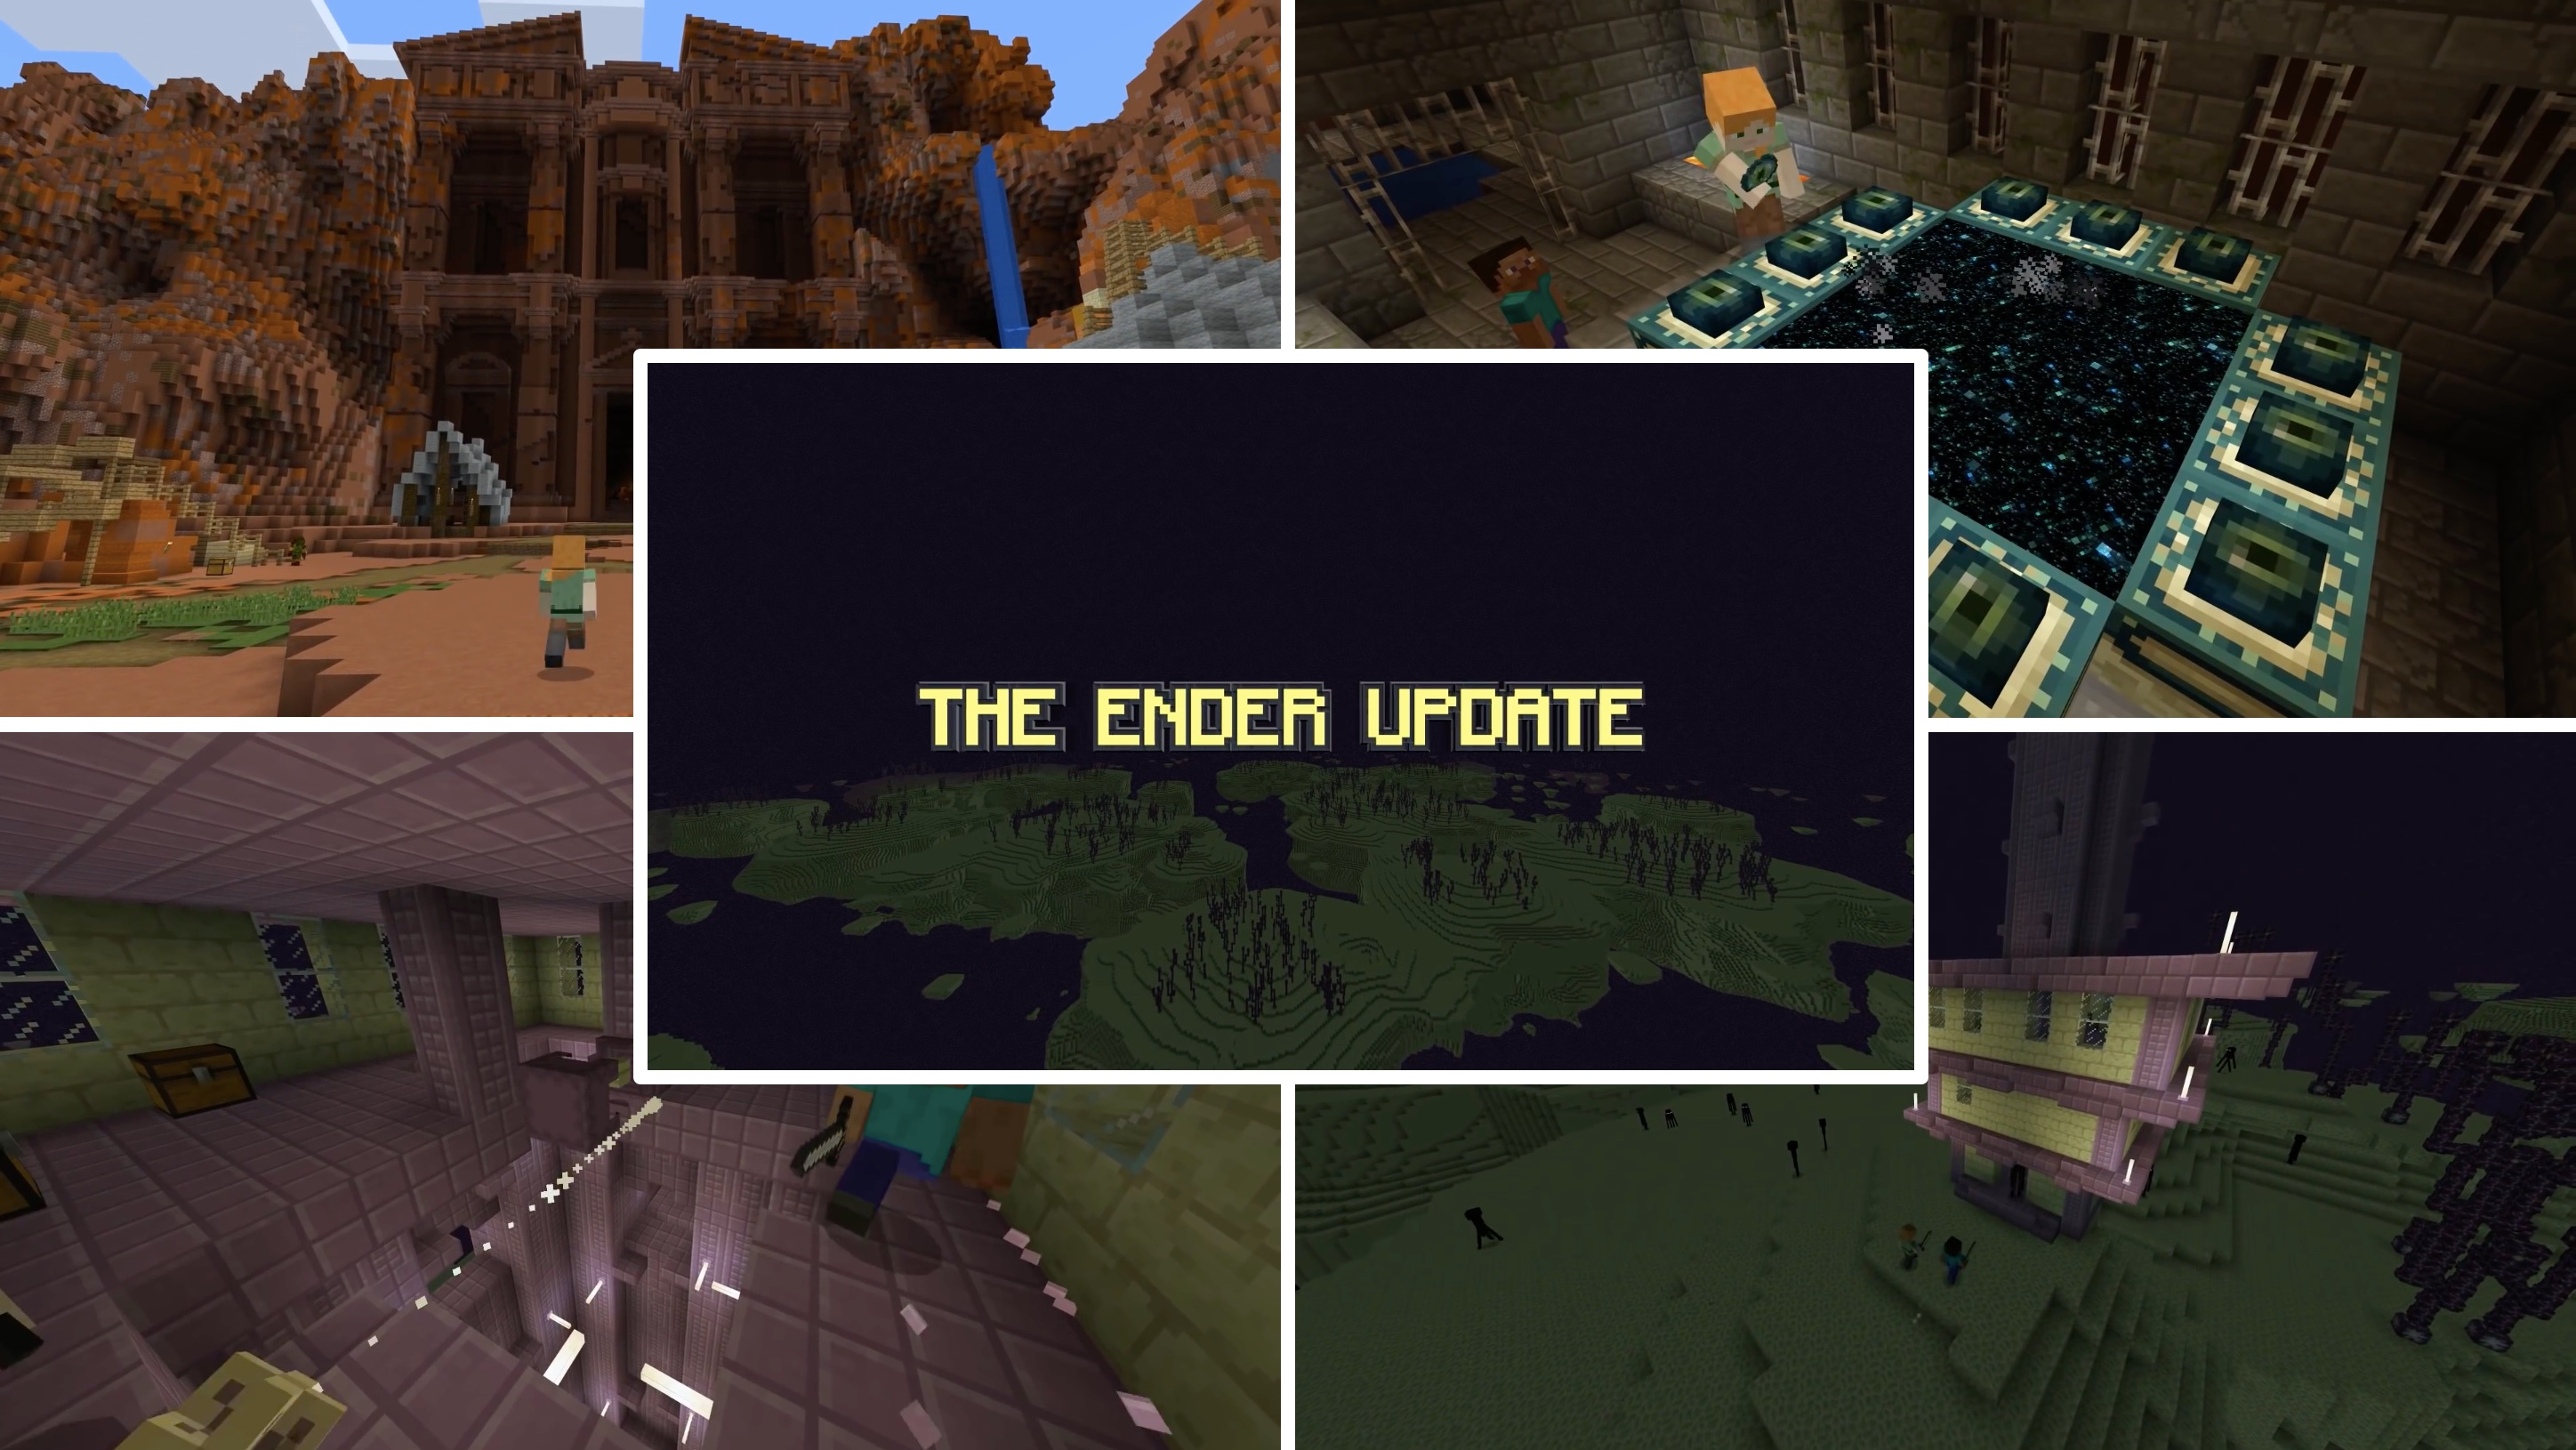 Minecraft Ender update screenshot 001